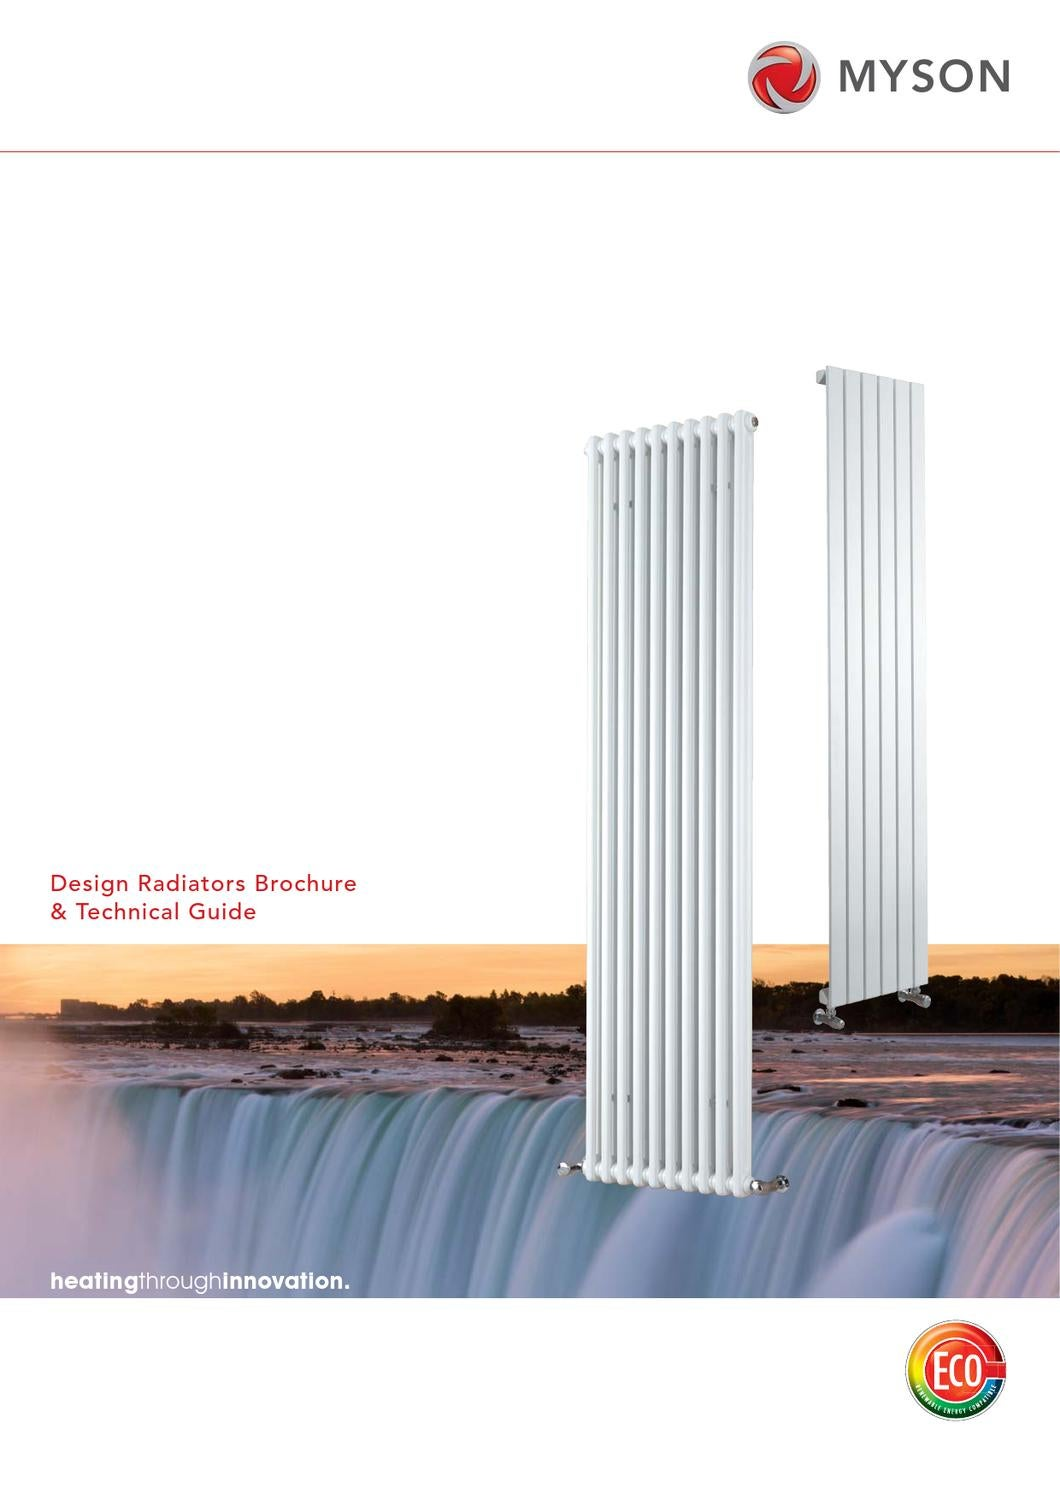 Myson Design Radiators Brochure And Technical Guide By